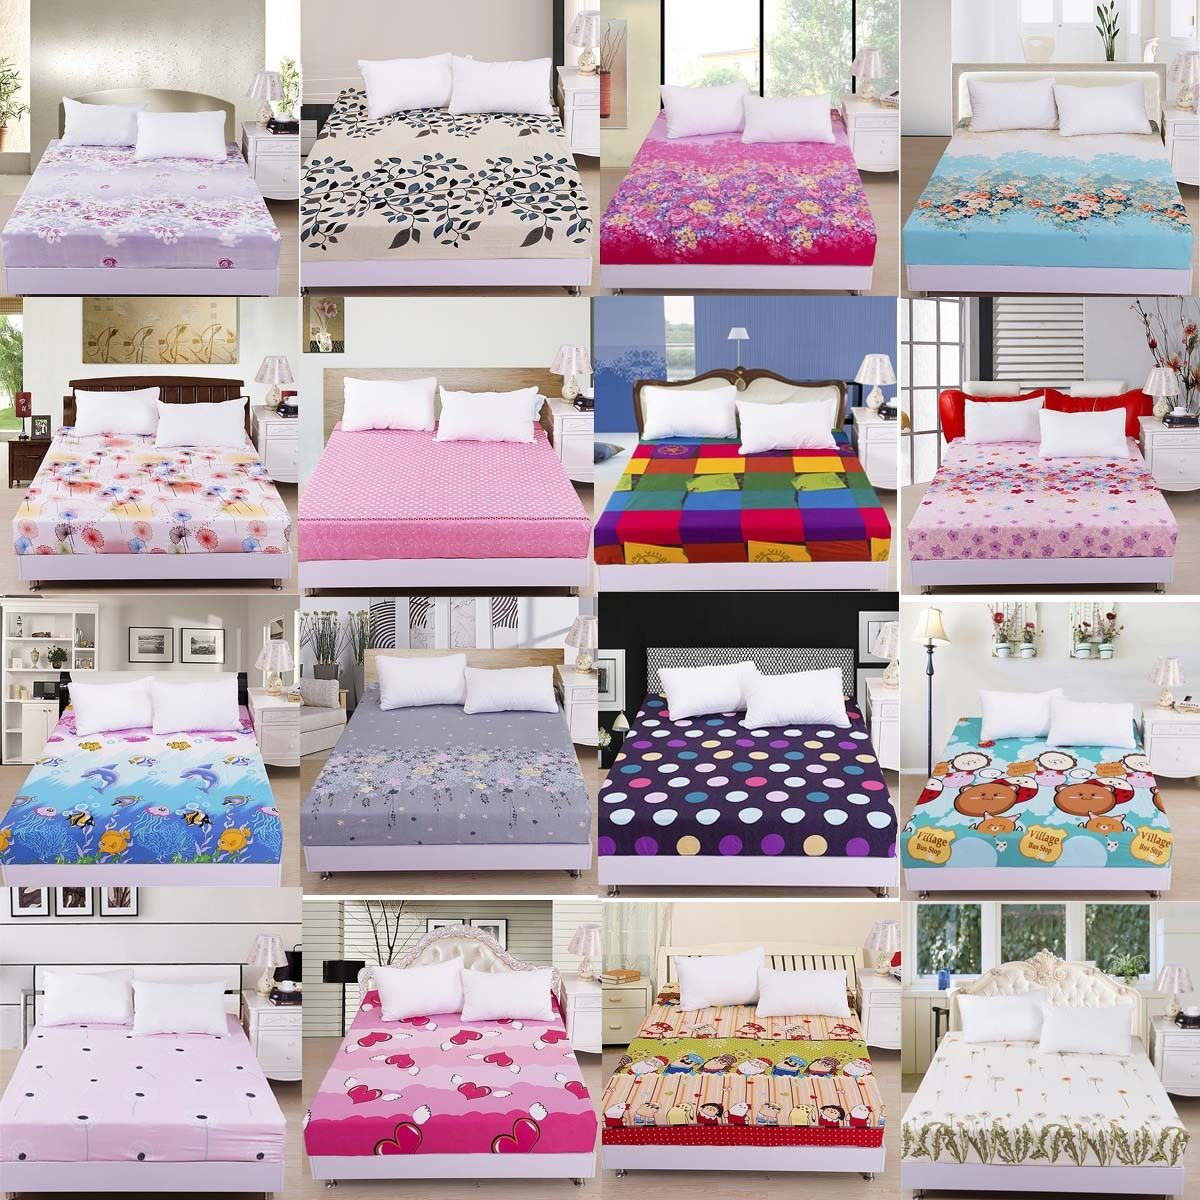 Queen Size Sheet. New King Queen Size Fitted ...